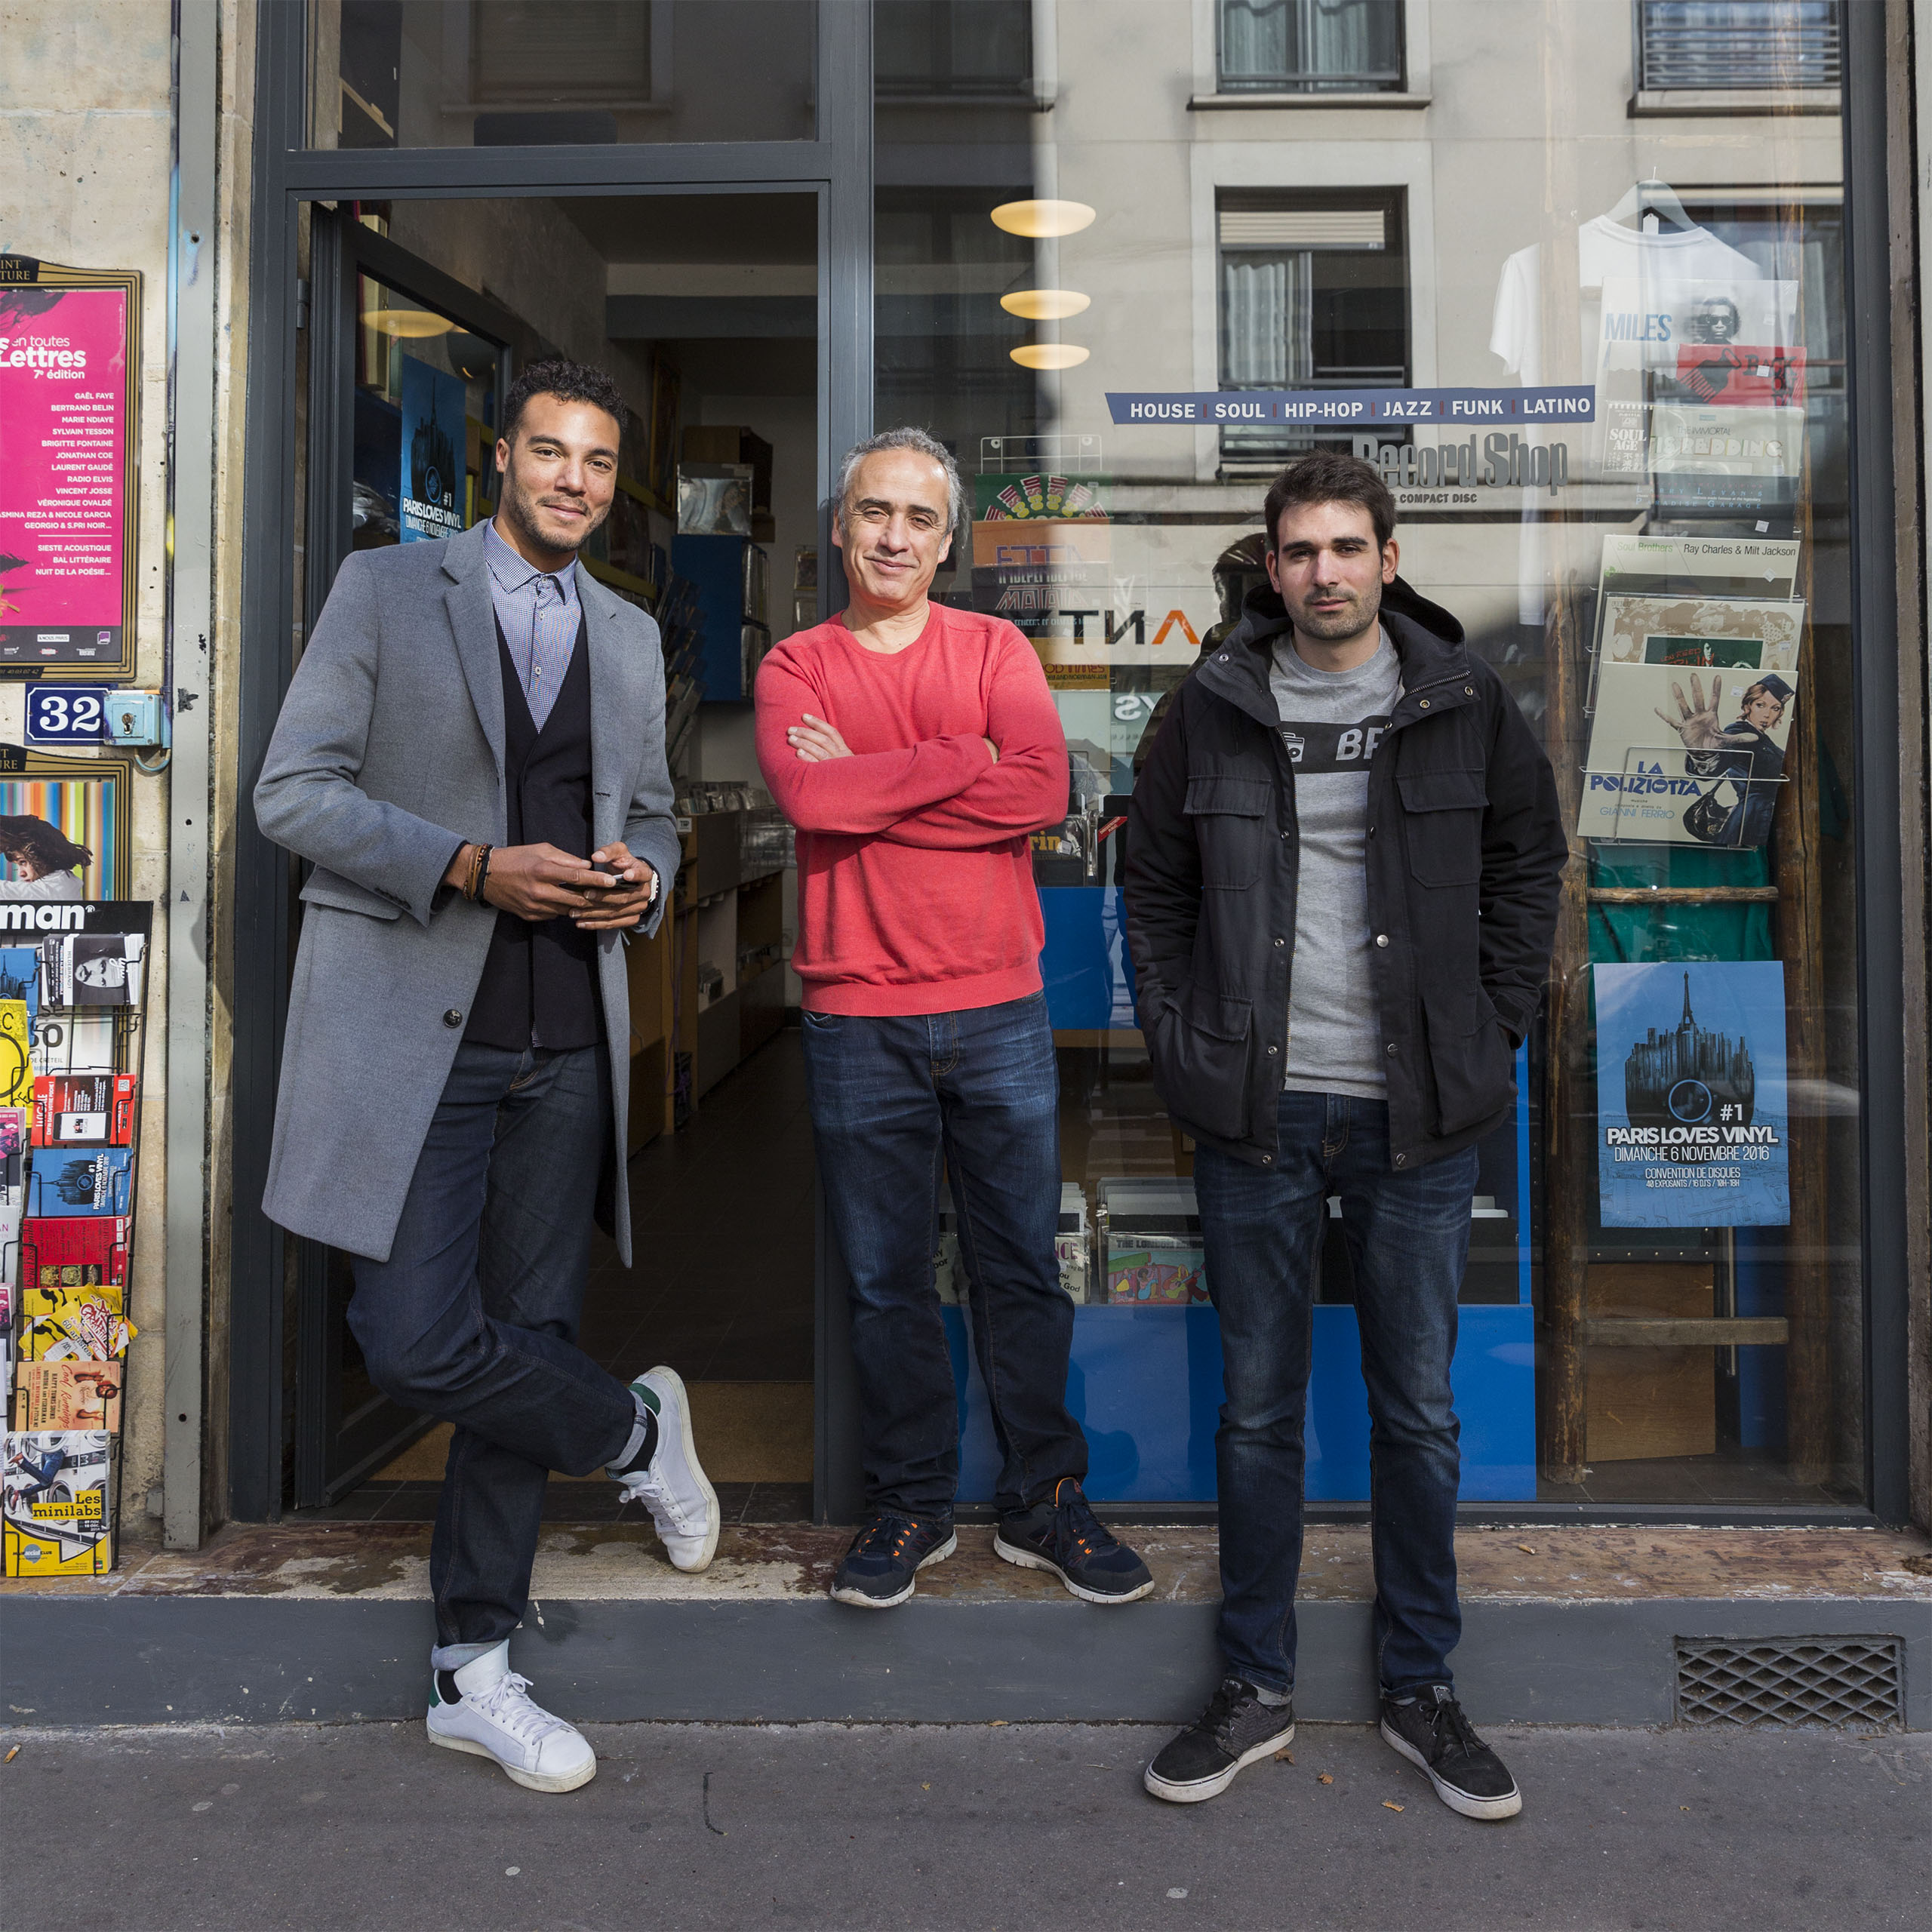 Paris – Antoine, Vinyl Culture of Paris 1